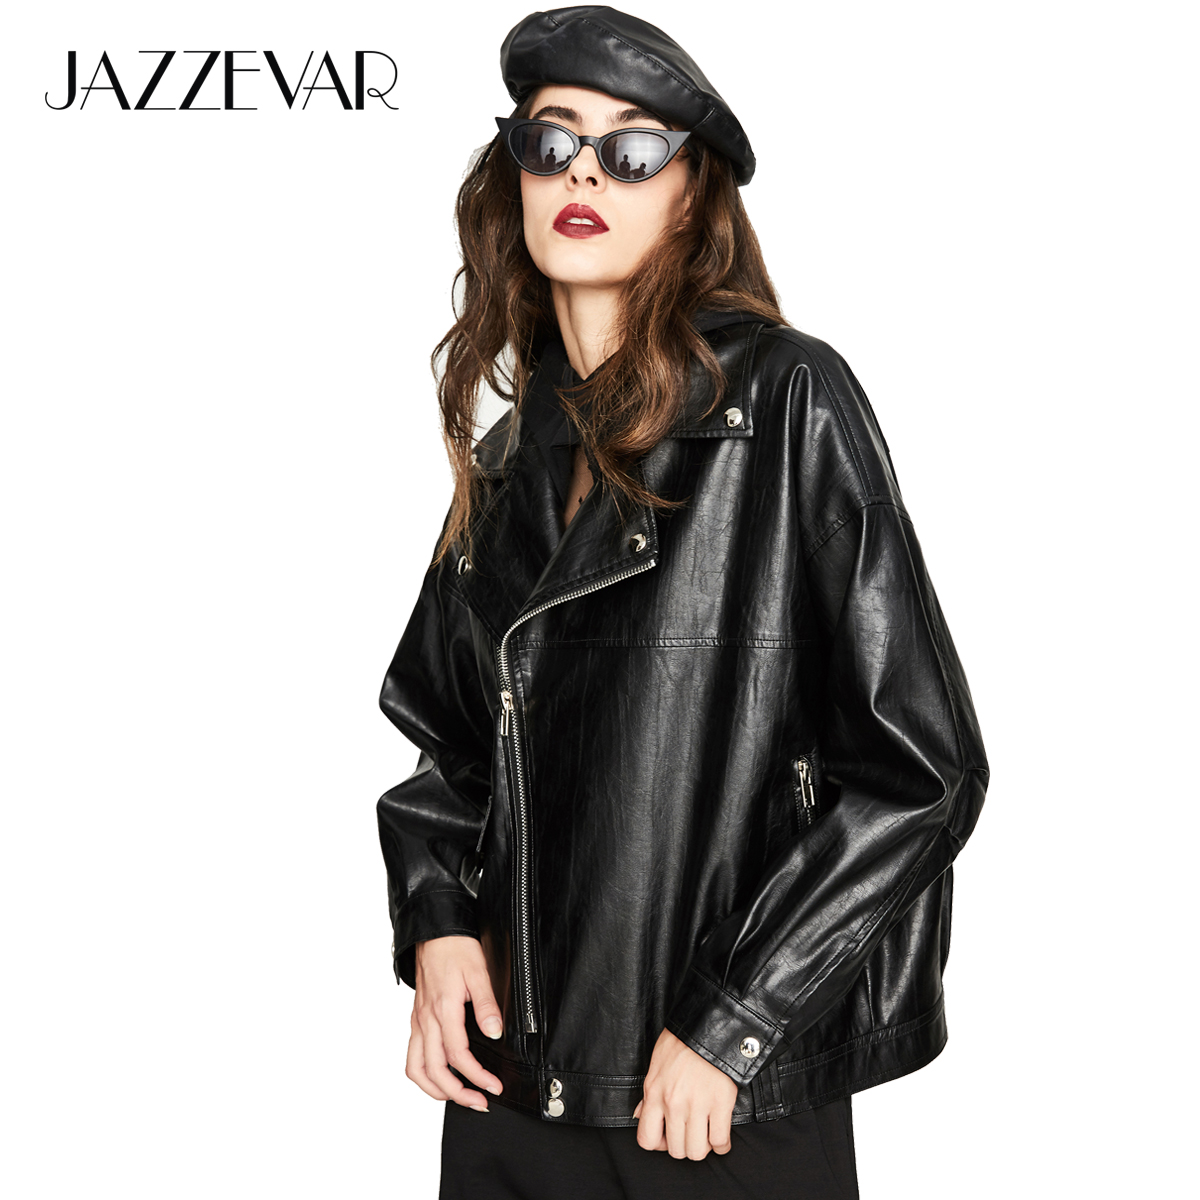 JAZZEVAR 2019 New Autumn High Fashion Street Women's Washed PU   Leather   Jacket Short oversized Zipper Jackets Good Quality YA7017